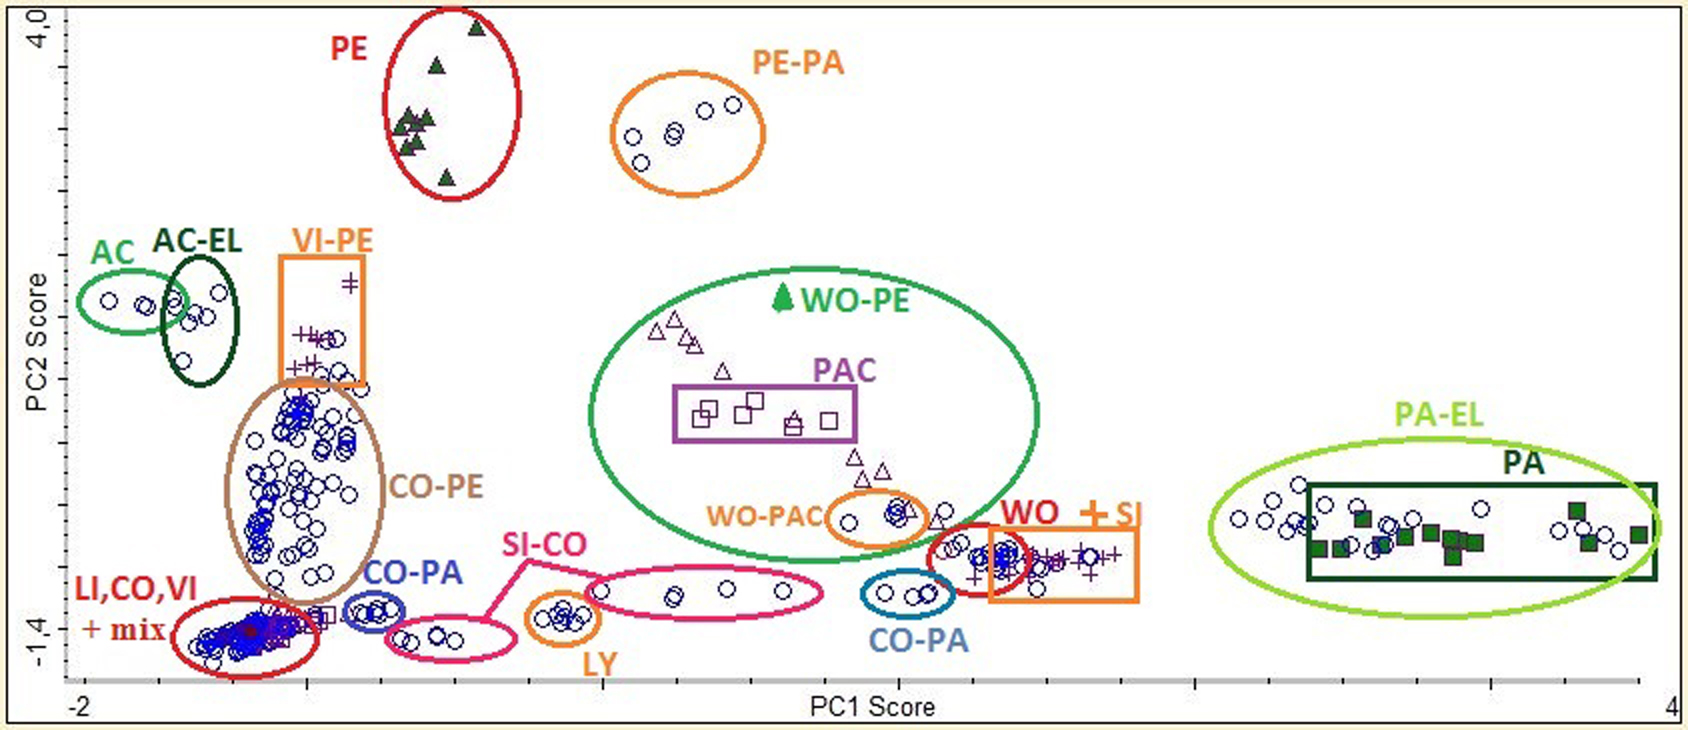 ill 4. PCA graph of textile samples using two principal components (PC1, PC2) PE - polyester, AC - acetate, LI - linen, CO - cotton, VI - viscose, PAC - poly-acrylic, LY - lyocell (Tenzel®), WO - lamb-wool, SI - silk, PA - polyamide, EL – elastane